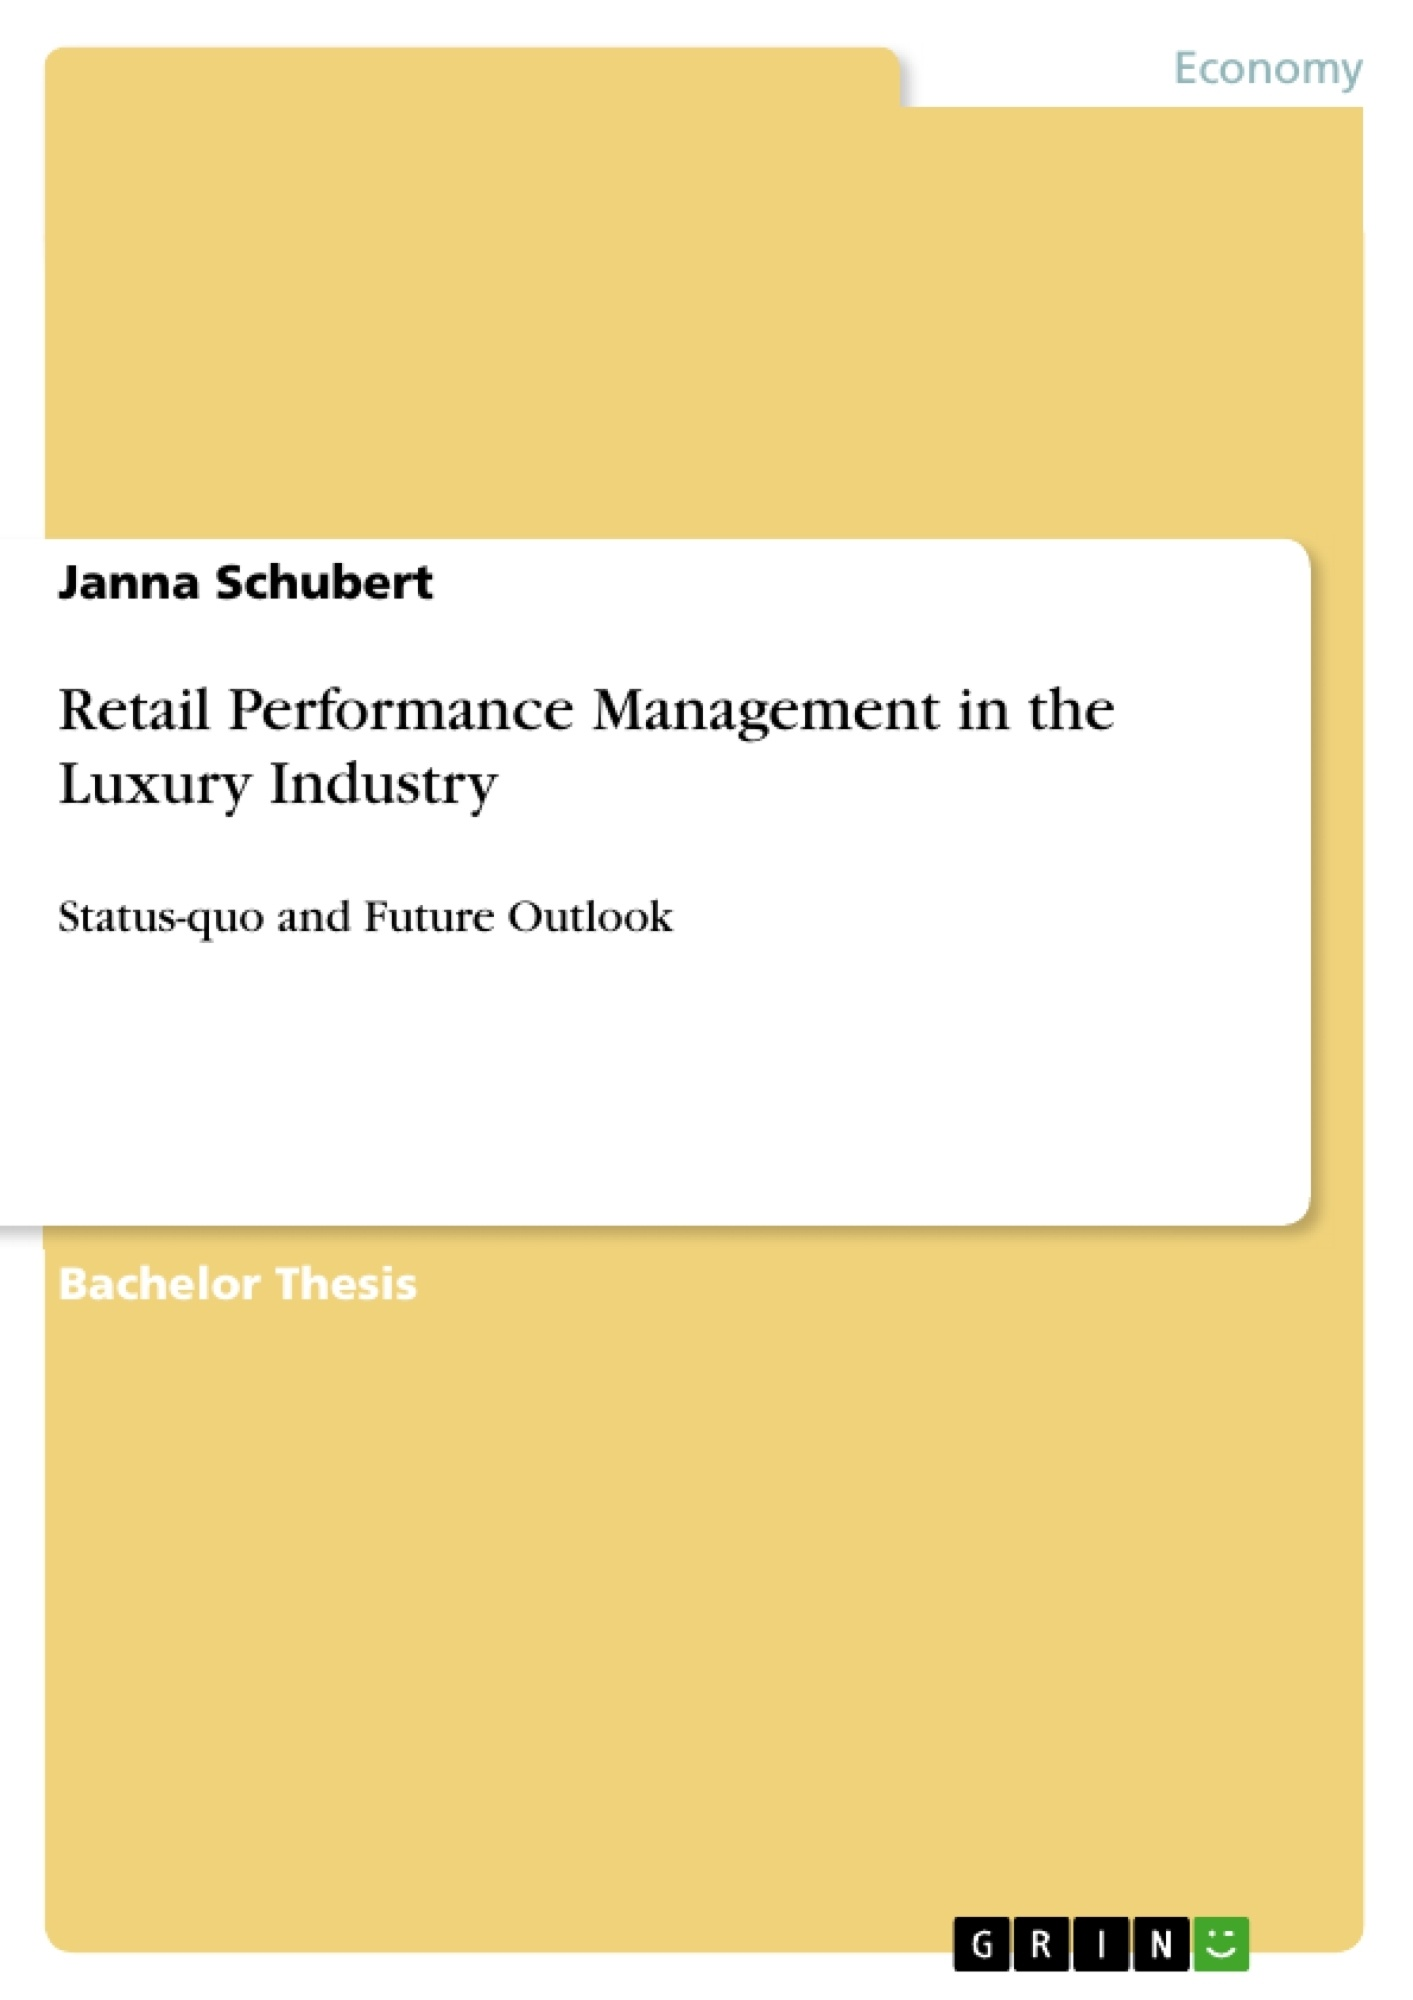 Title: Retail Performance Management in the Luxury Industry